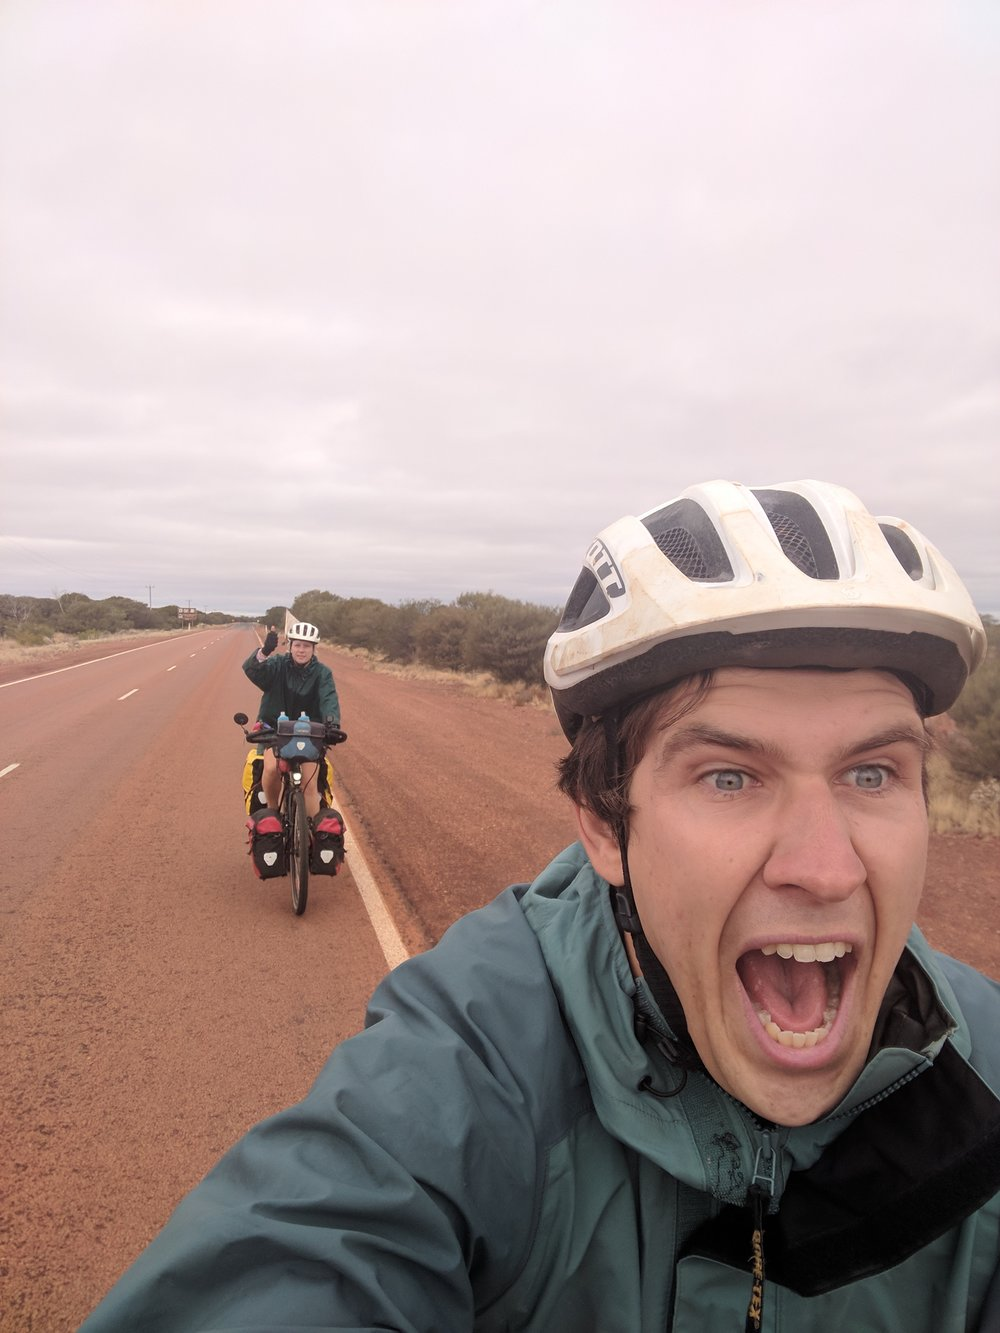 Leaving Laverton with freezing winds blowing us west!